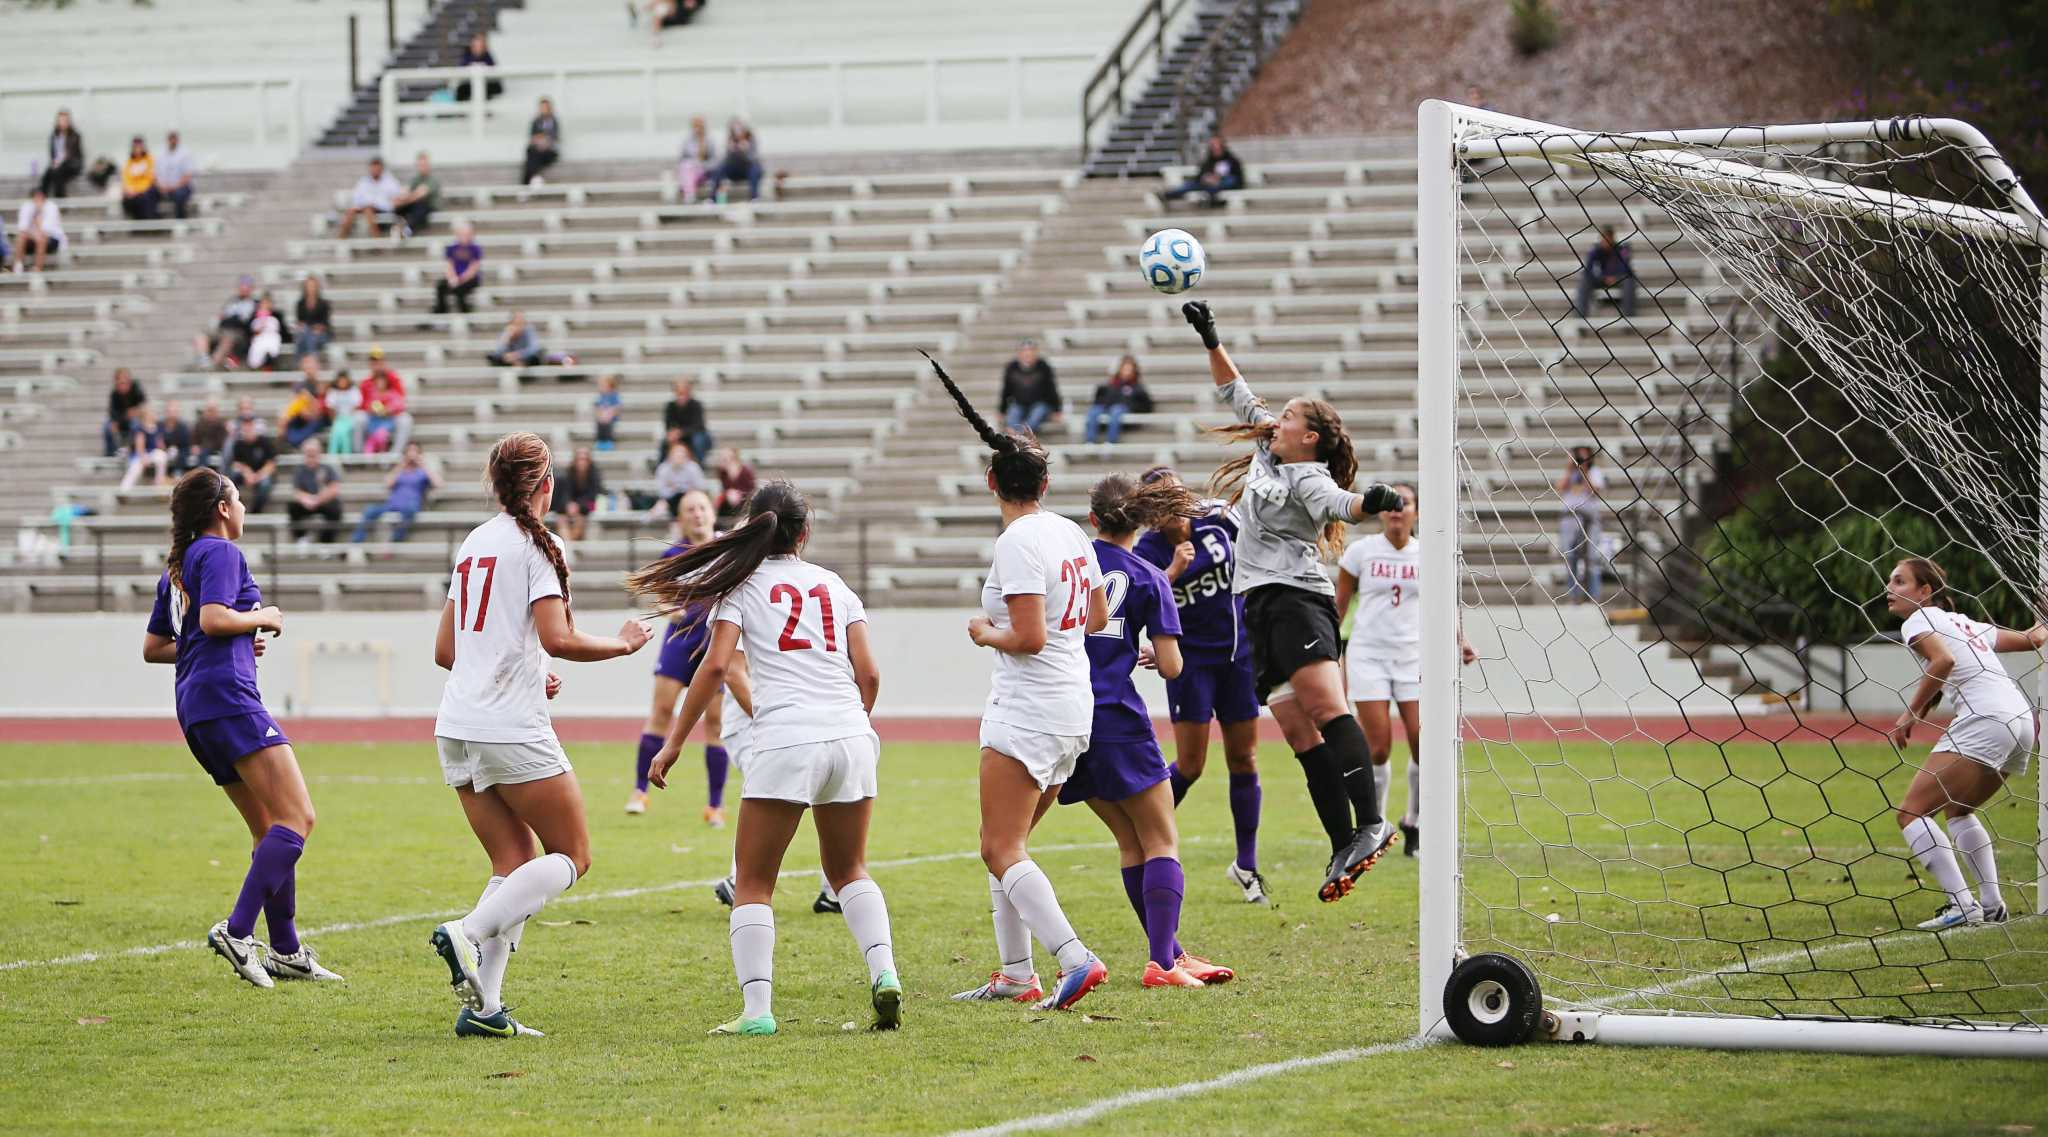 Women's soccer loses second game of the season against Cal State Easy Bay Pioneers